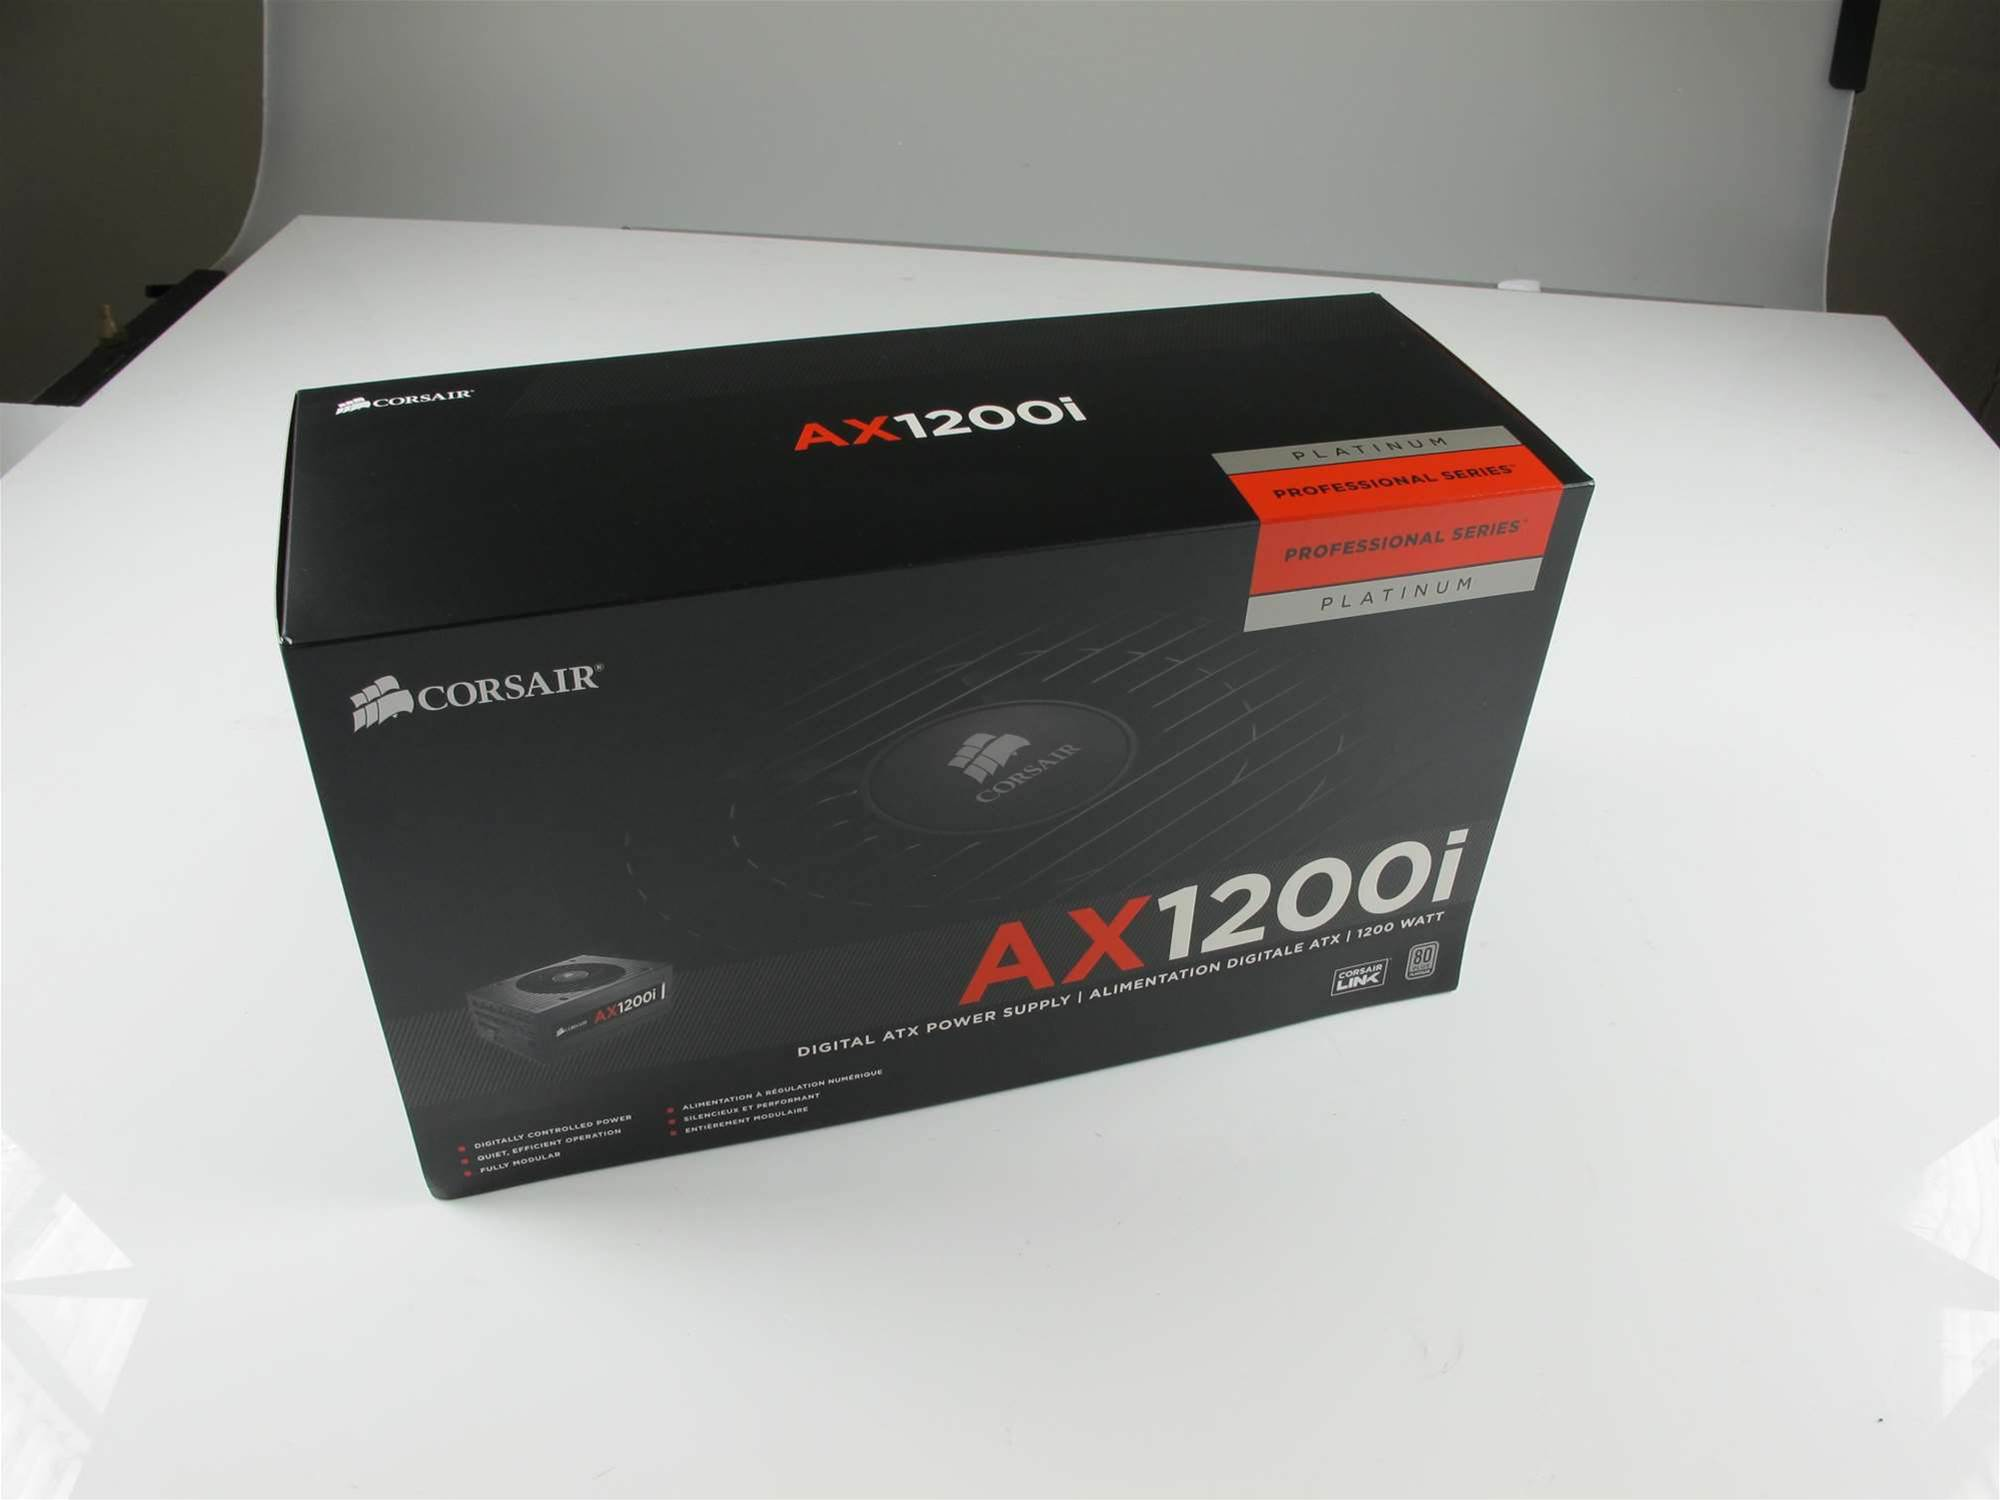 Corsair AX1200i PSU Gallery